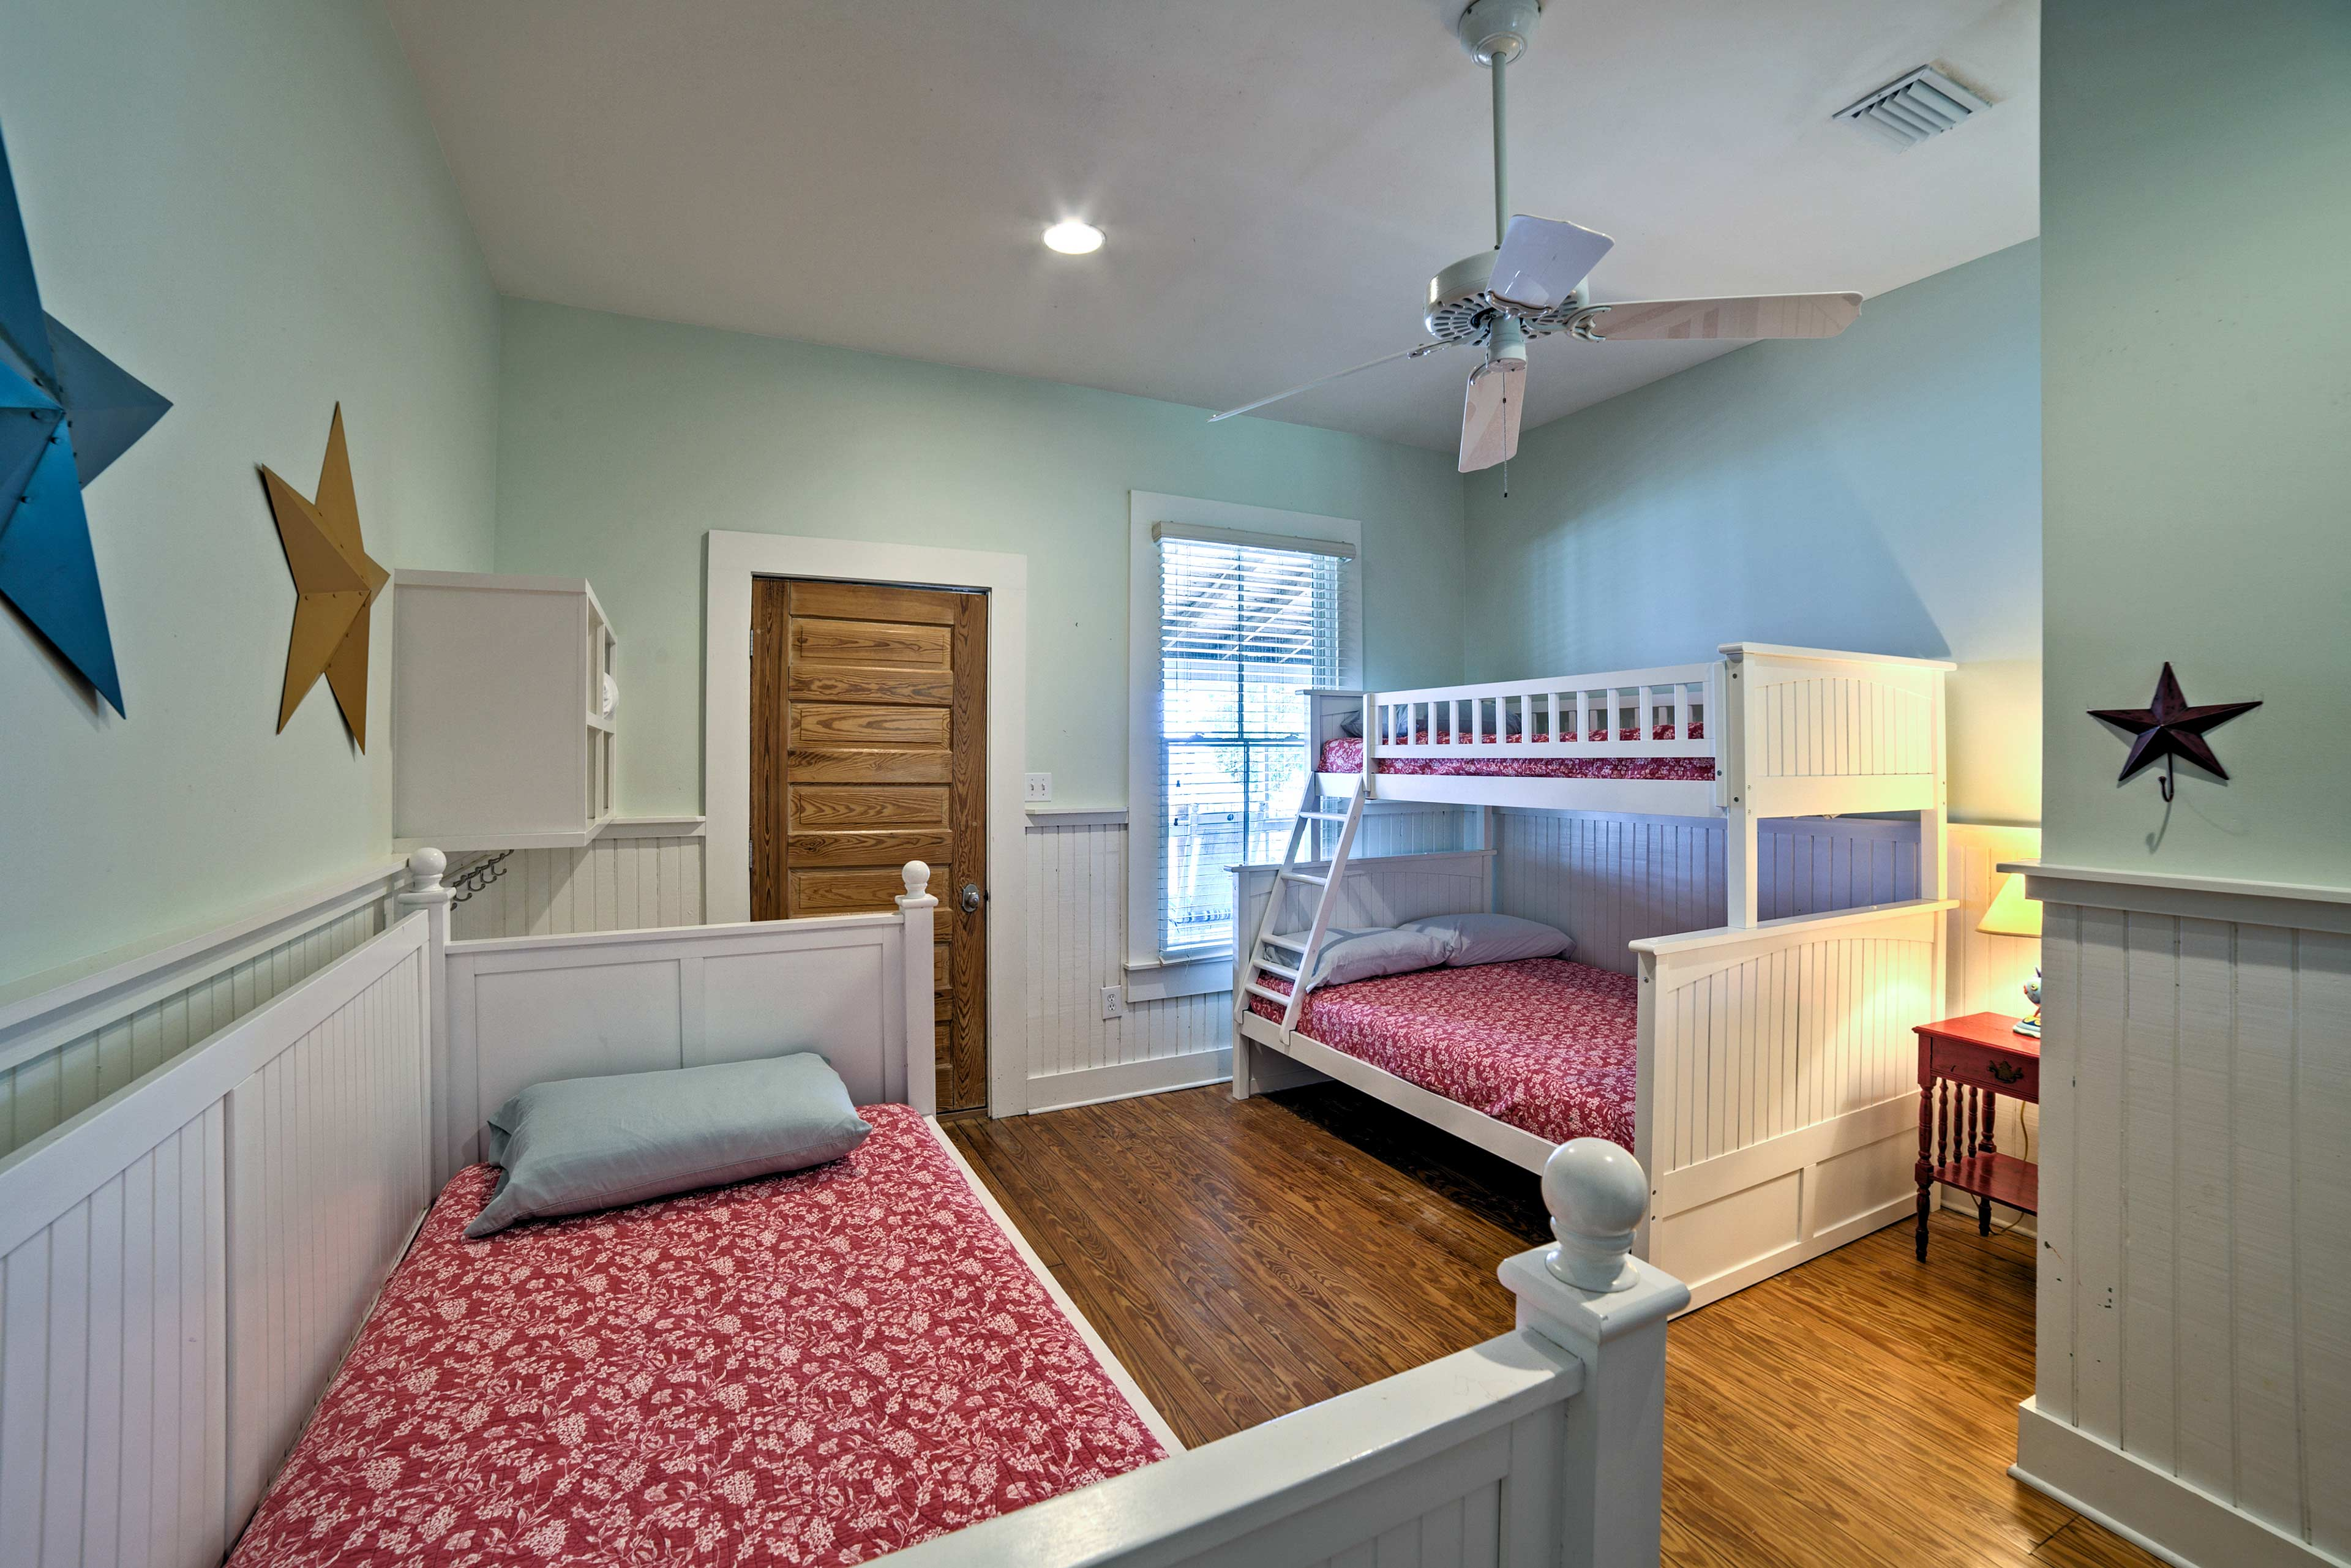 Kids will love claiming this bunk room at night.